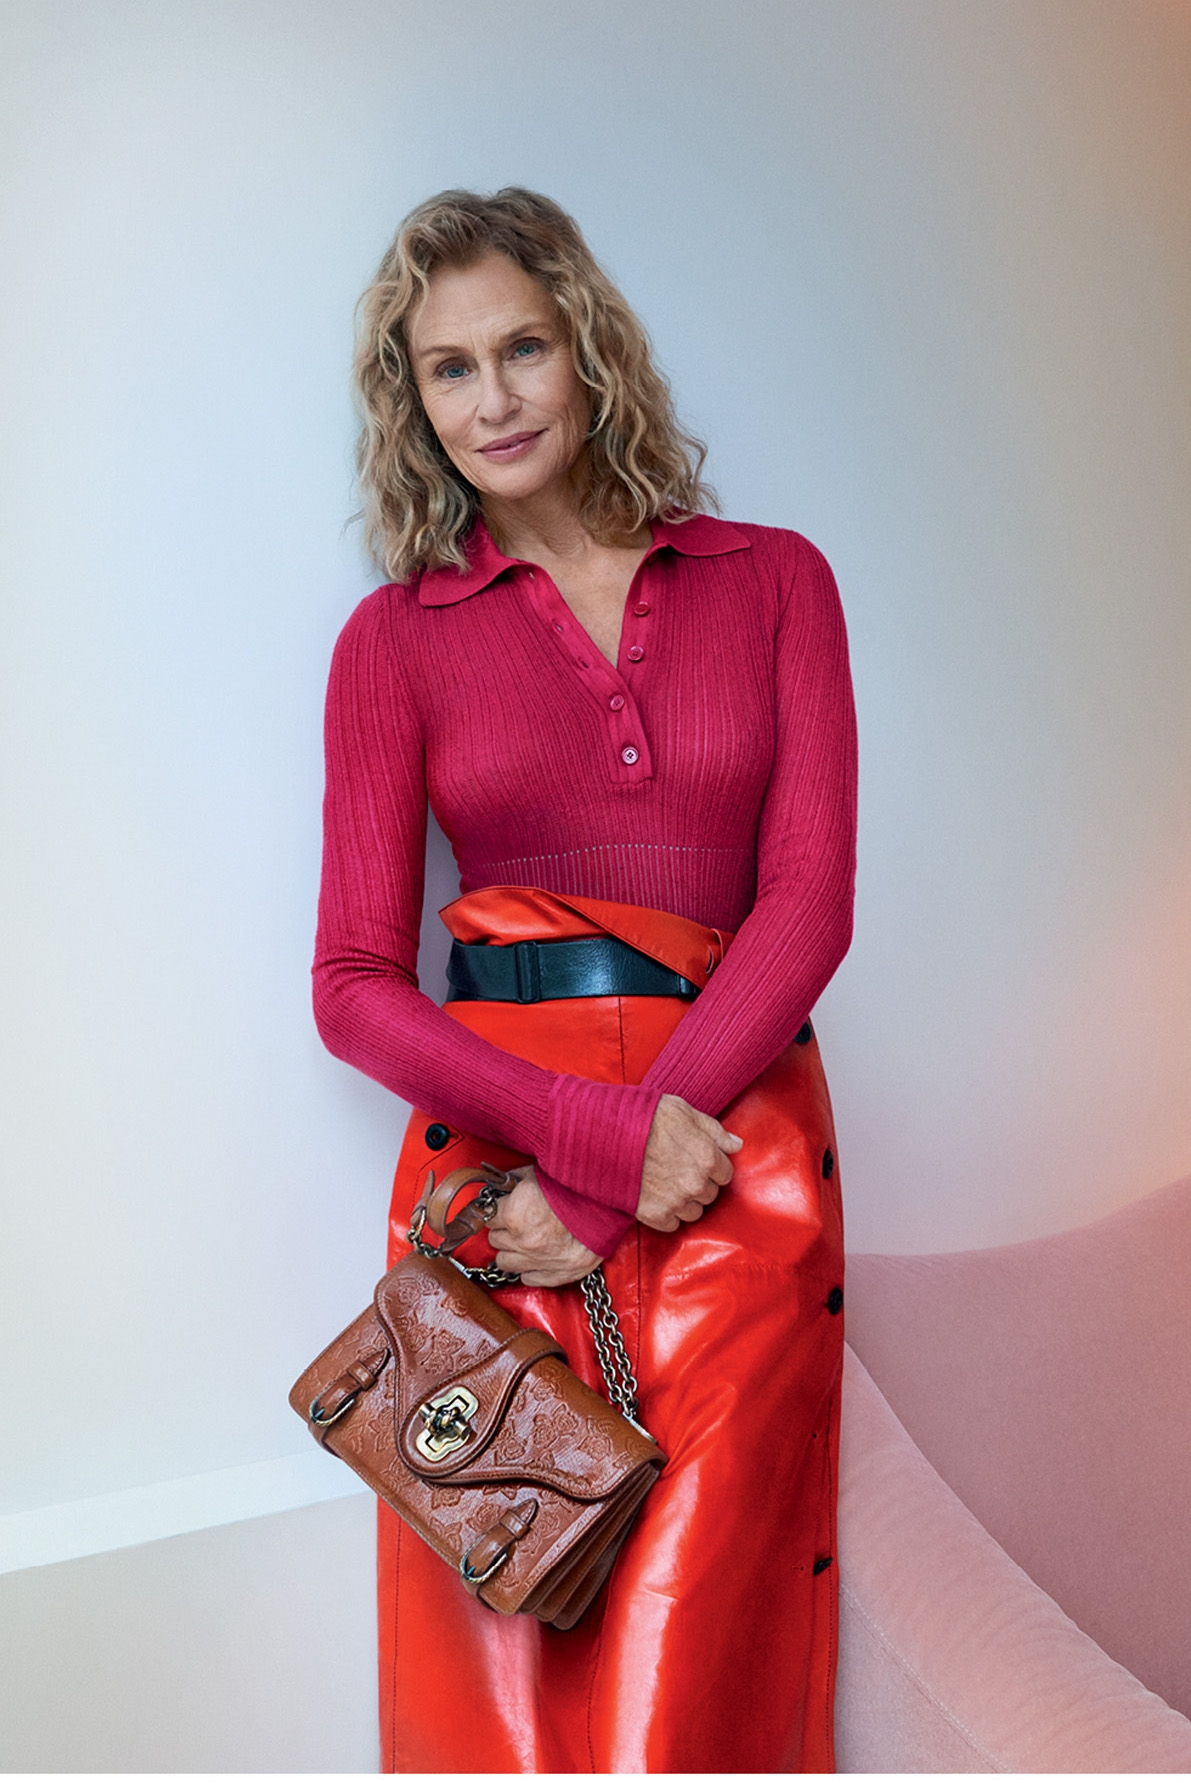 1483464953-hbz-lauren-hutton-bottega-veneta